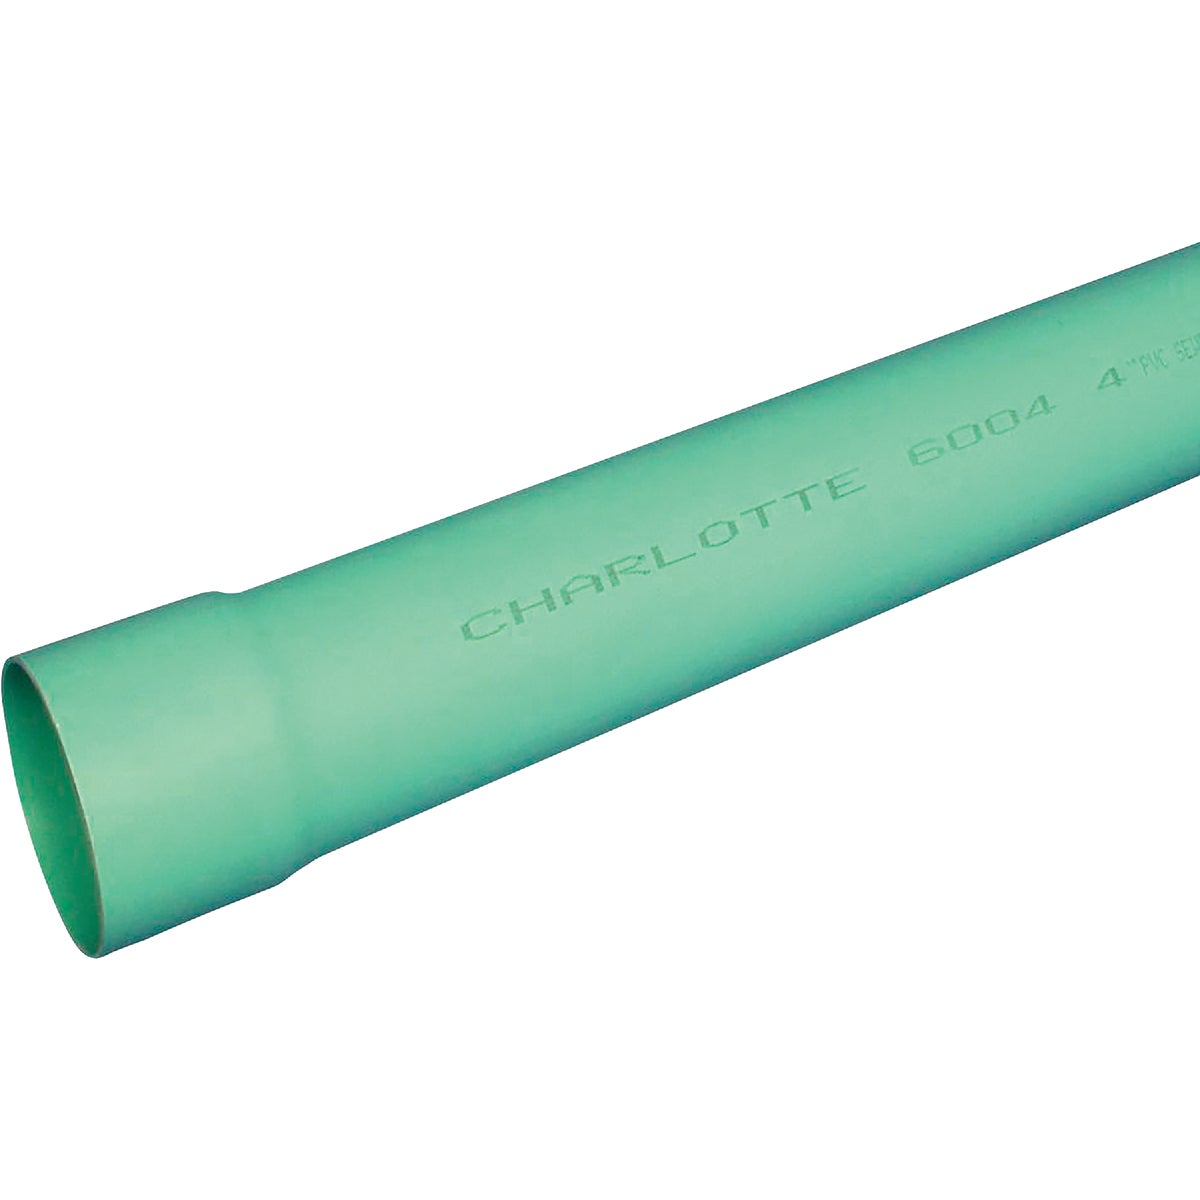 "6""X10'D&S SOLID PVC PIPE - 40060 by Genova Inc"